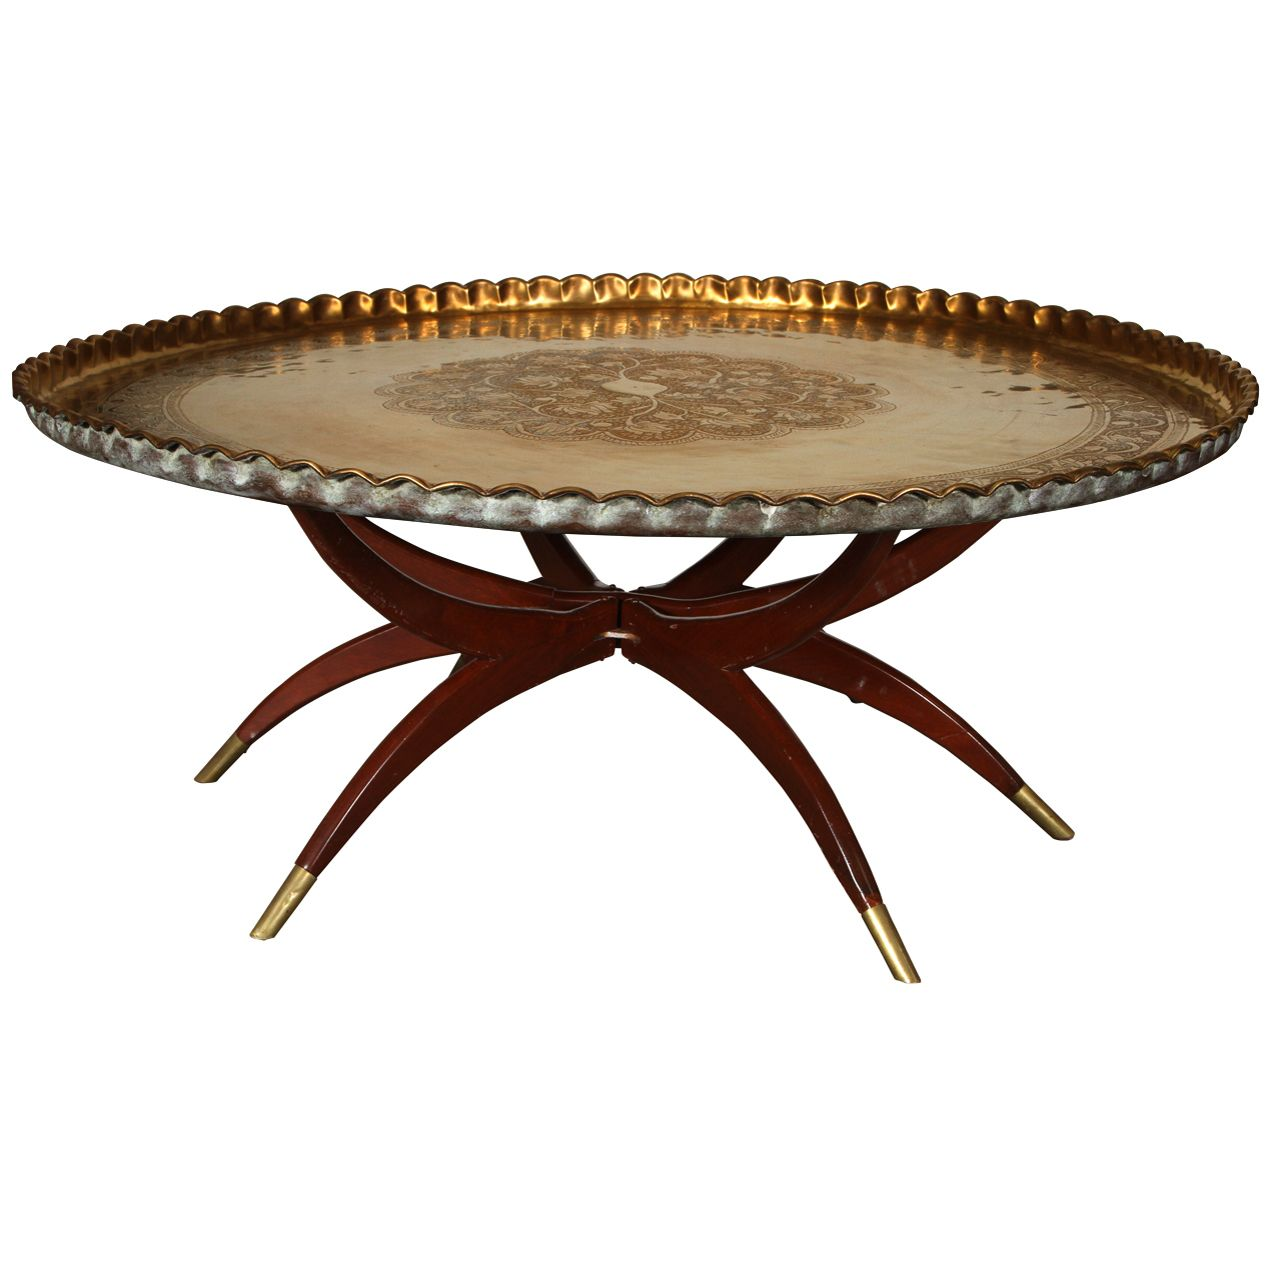 Large Moroccan Round Brass Tray Table On Folding Stand 45 In Brass Tray Table Brass Tray Tray Table [ 1280 x 1281 Pixel ]